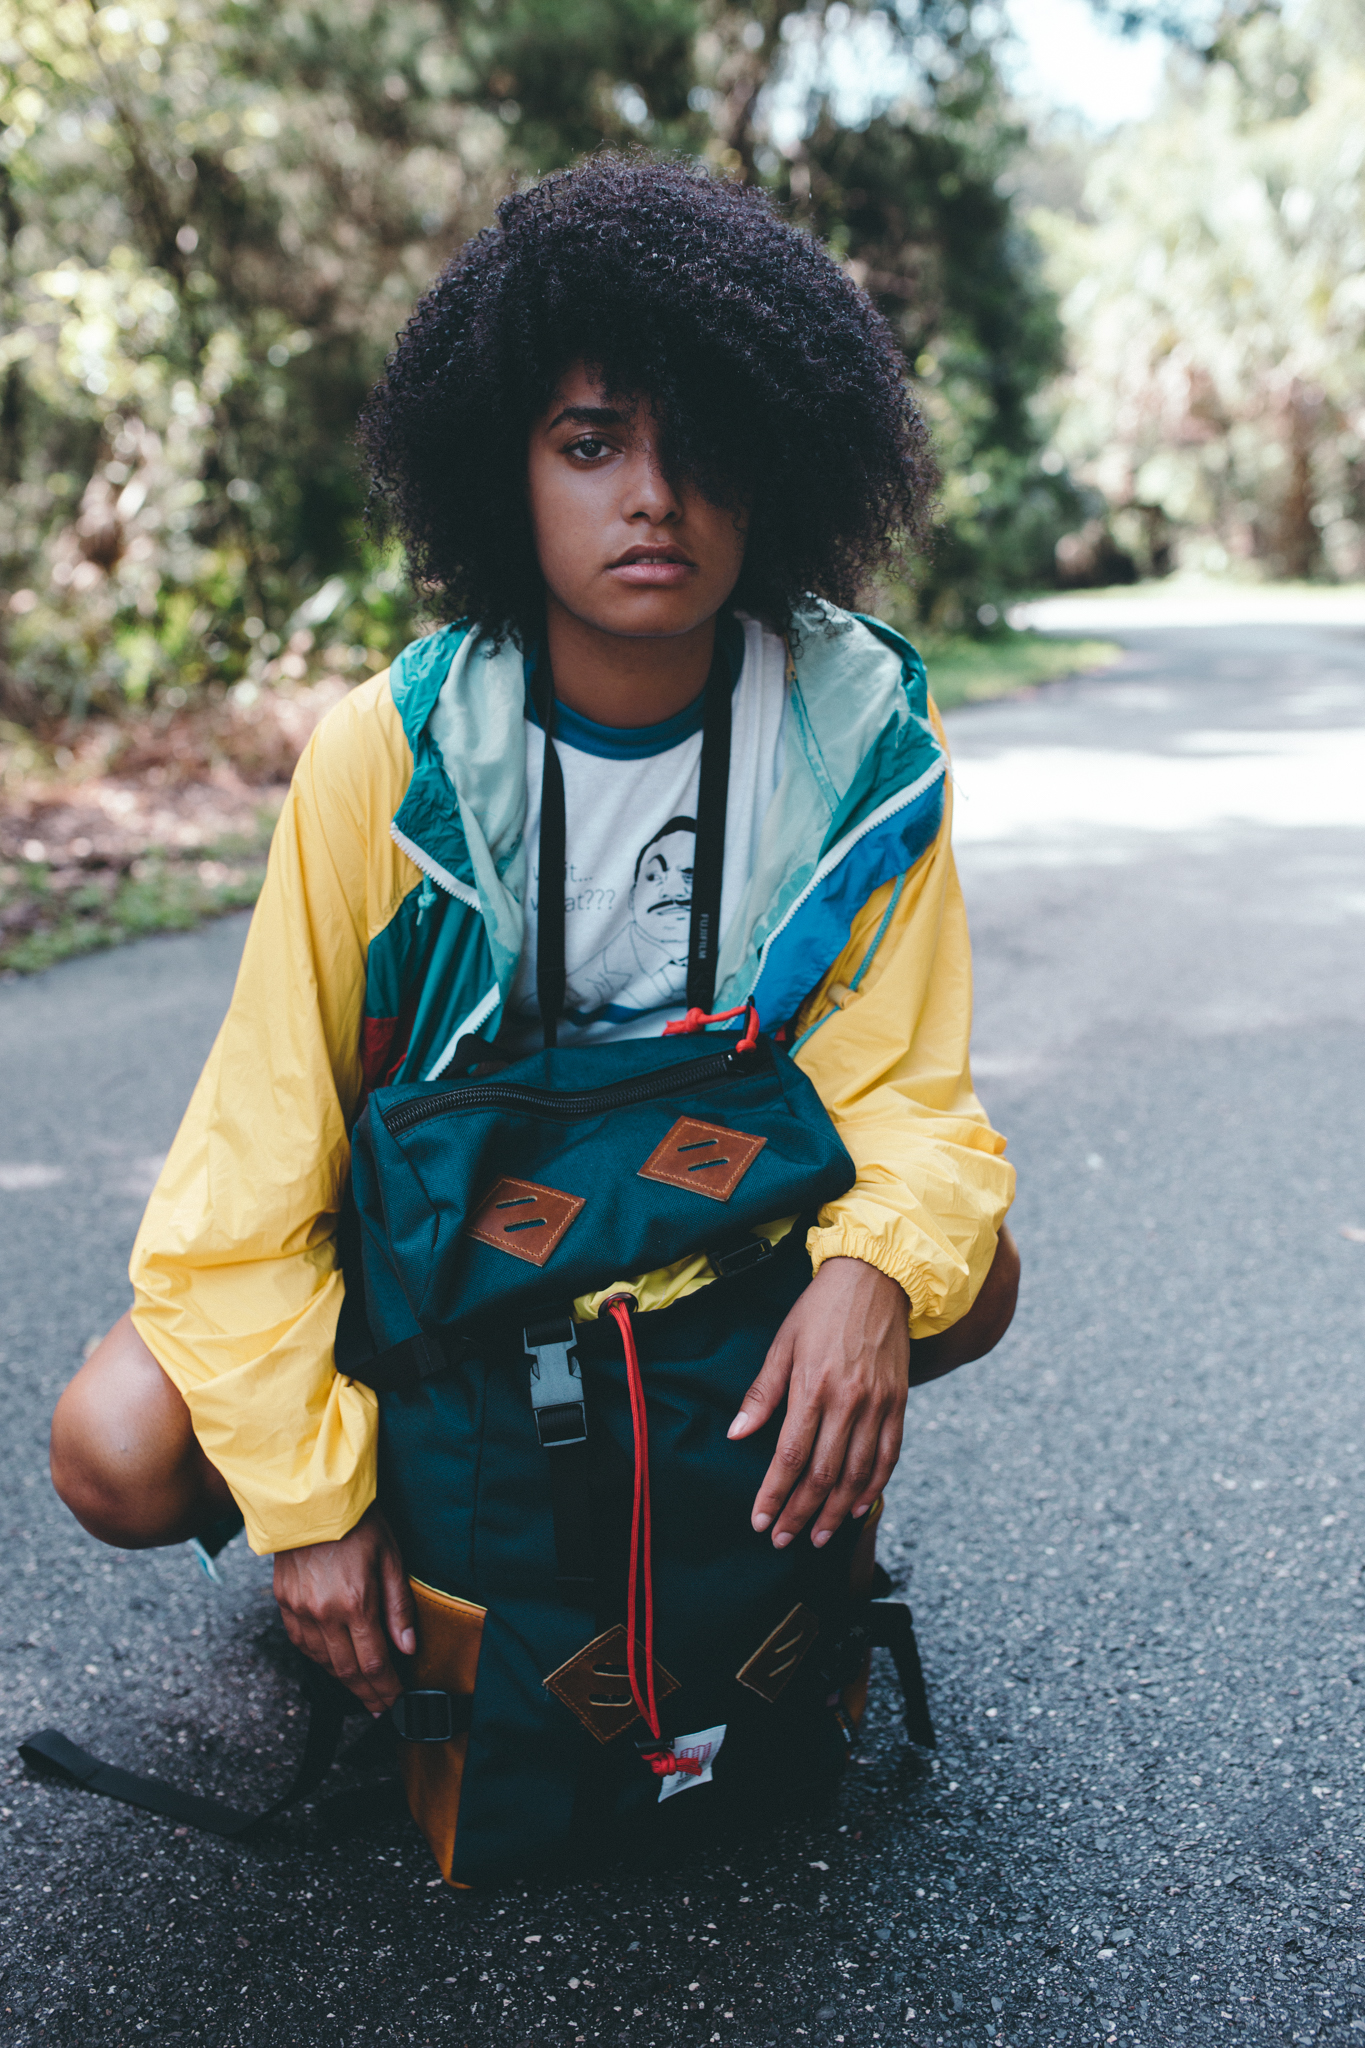 4. The Look - The KLETTERSACK is a perfect mixture between modern design and minimalistic living. The look is sleek, simple and bold. I absolutely love the color combinations in this particular KLETTERSACK and how well the bright yellows and reds compliment the dark blue base of the pack.